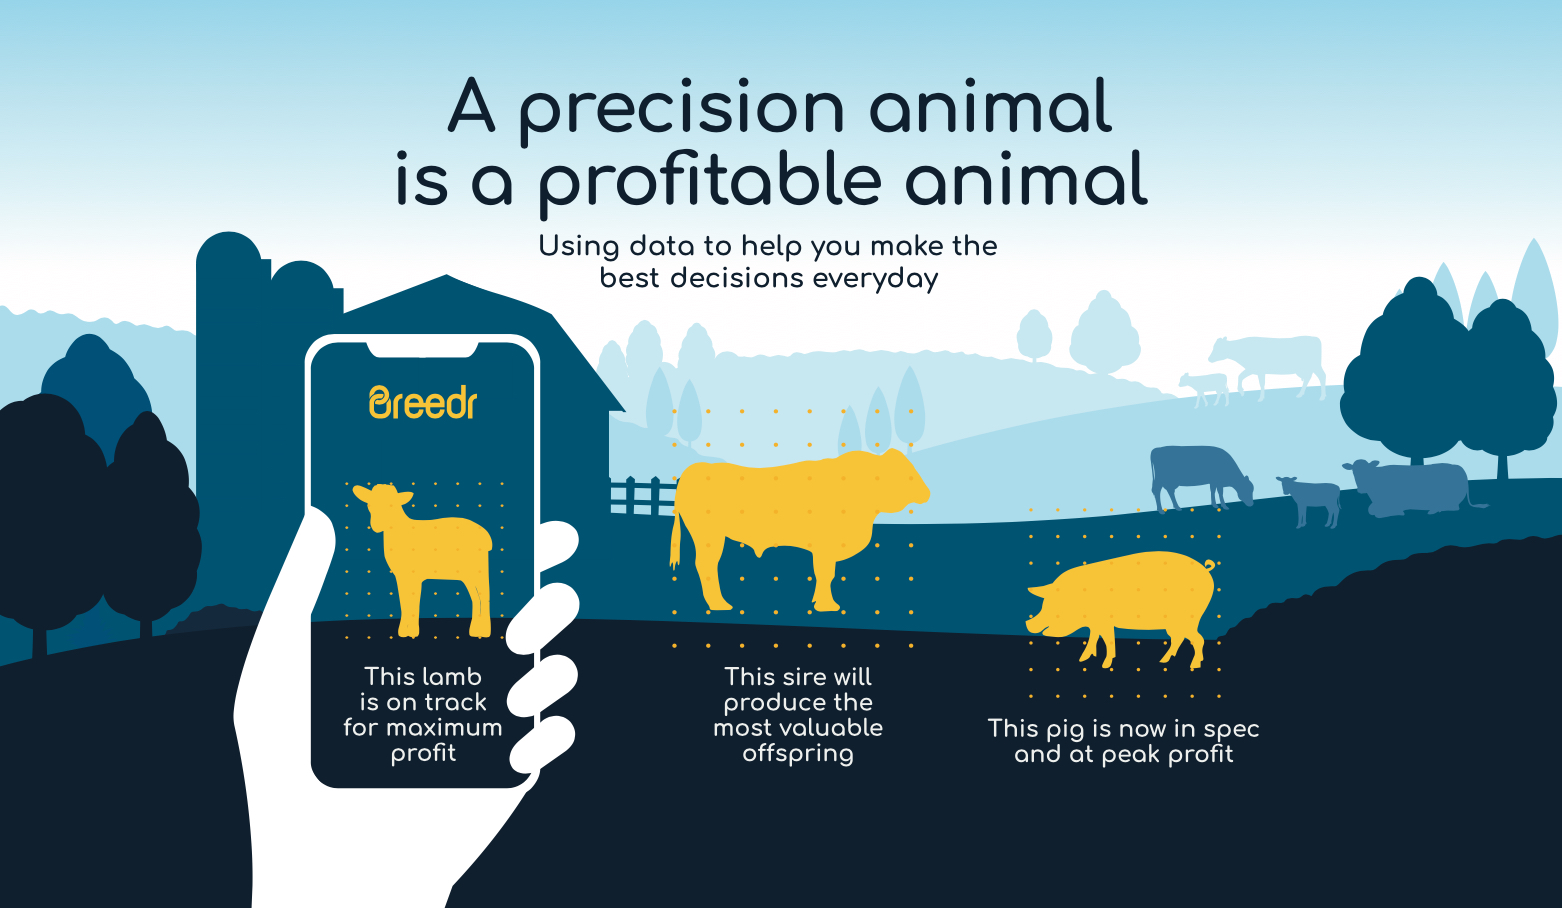 Breedr precision animal graphic